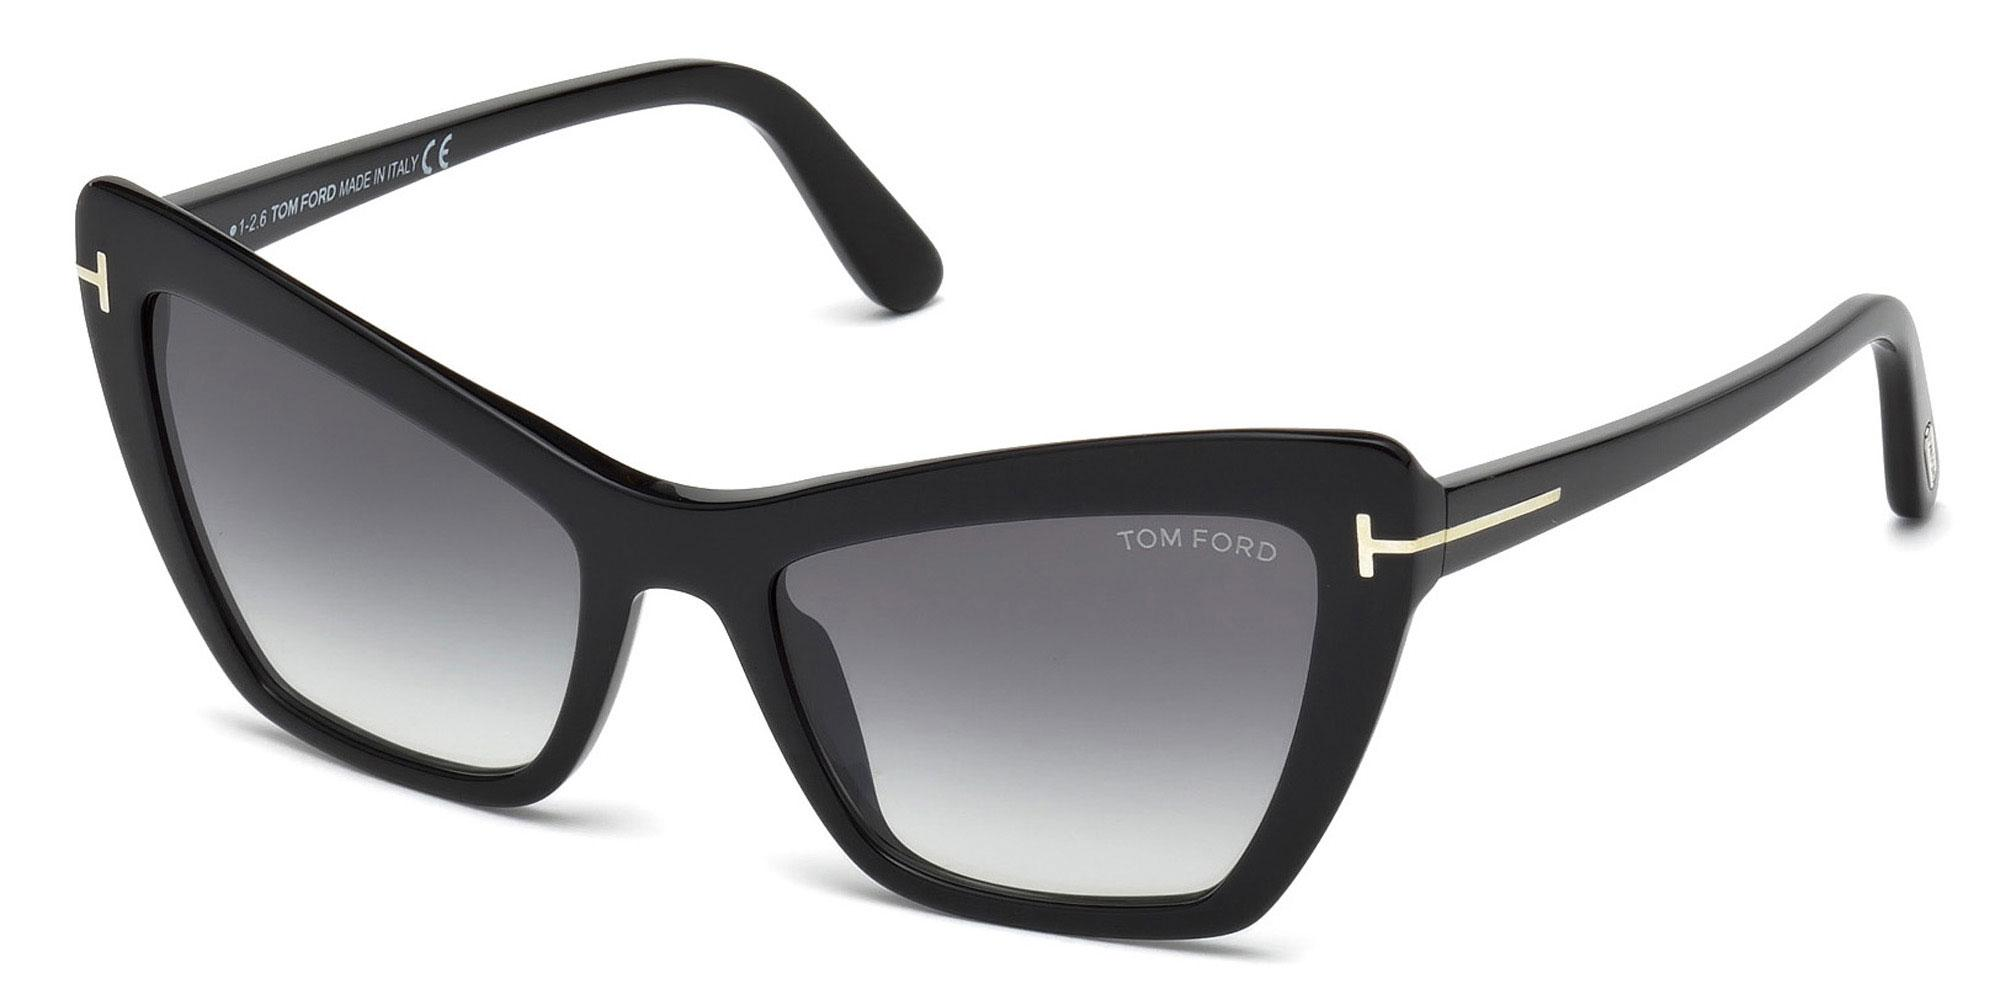 01B FT0555 Sunglasses, Tom Ford